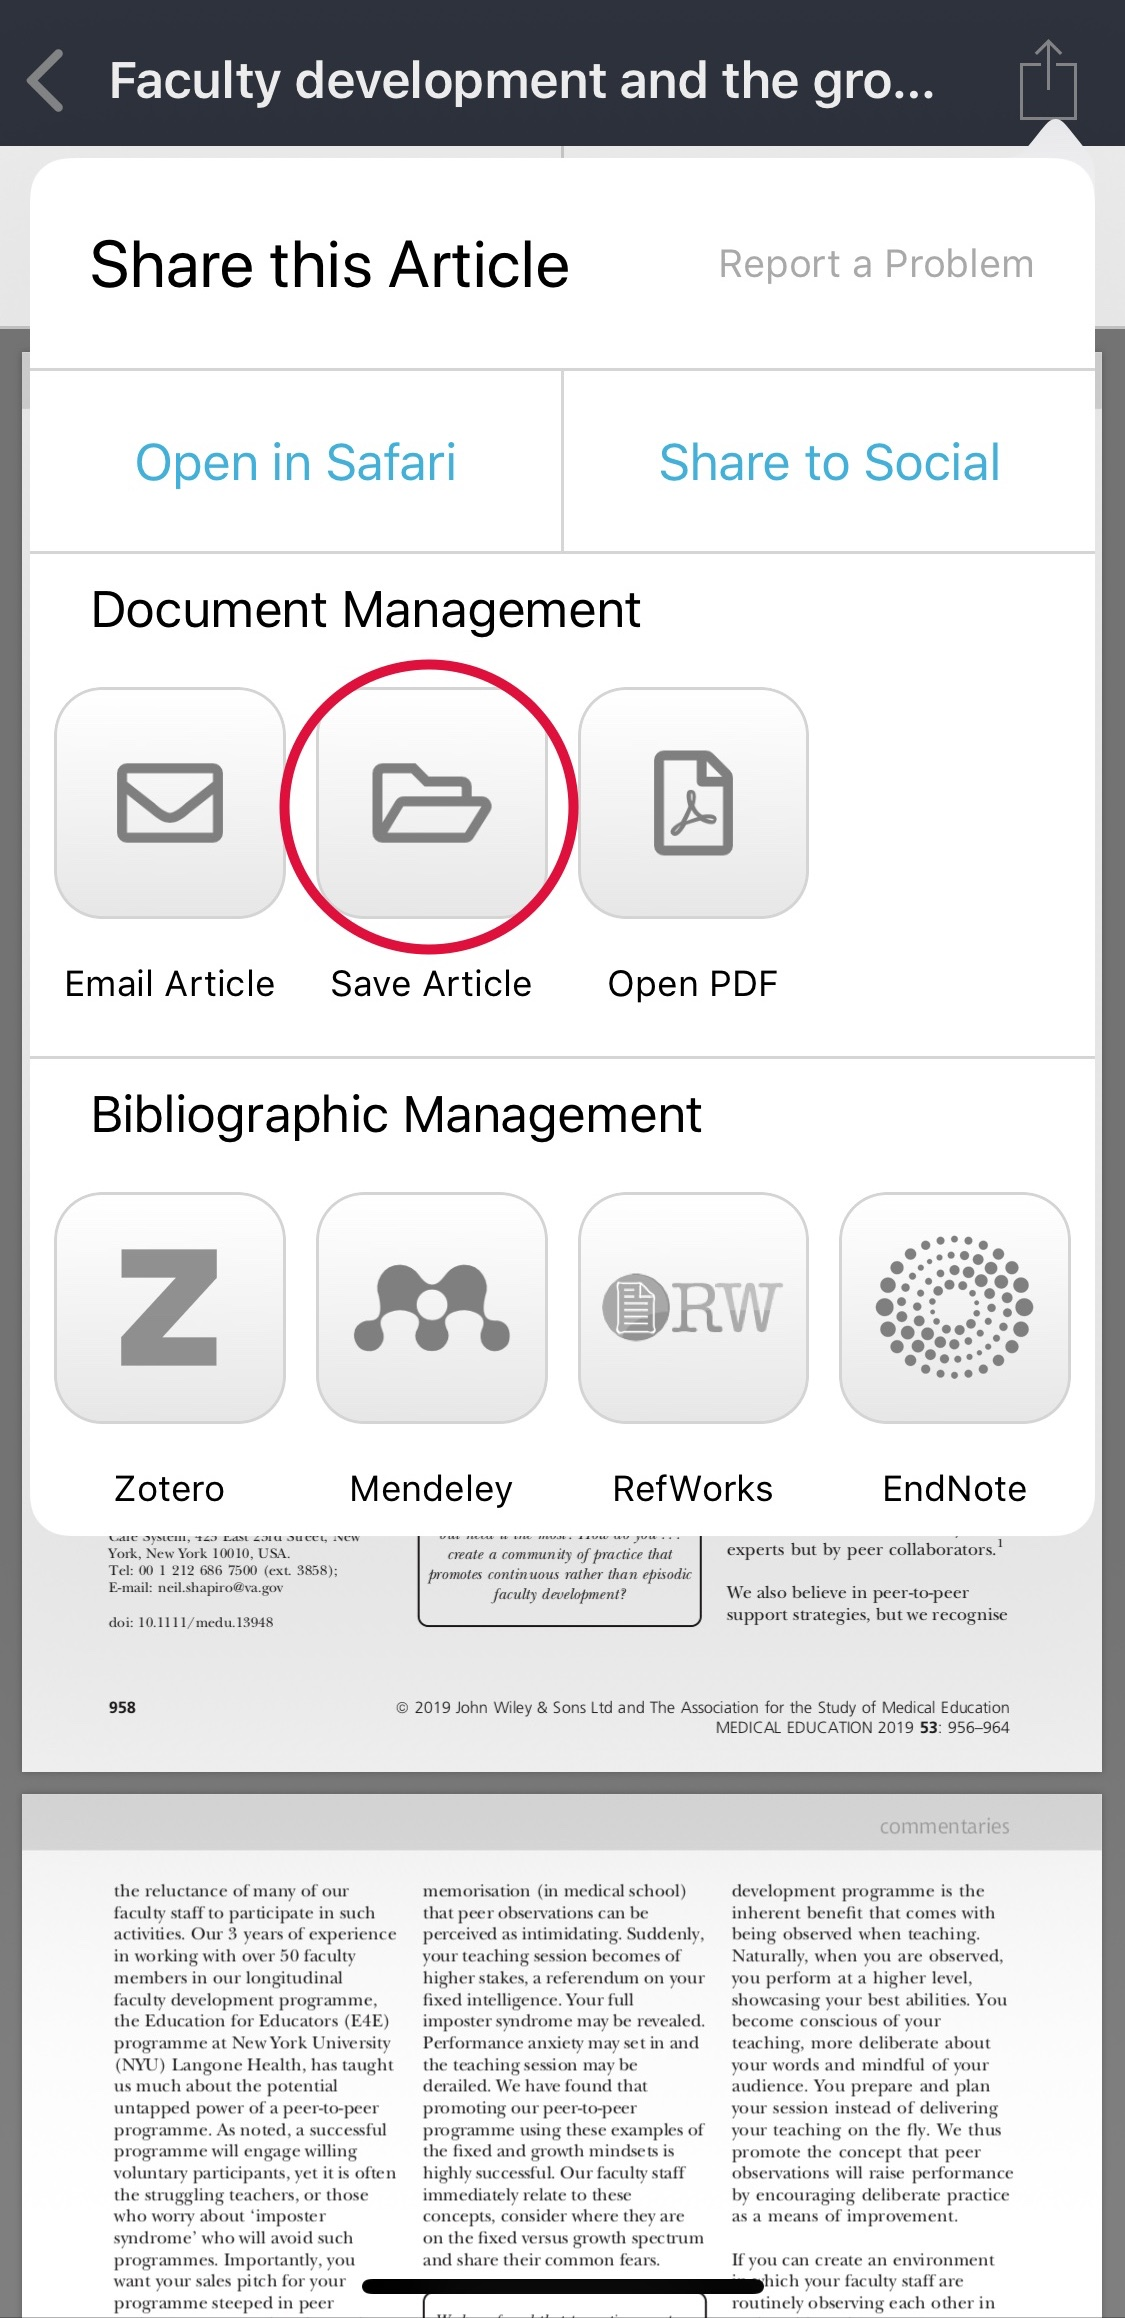 Example of article in view in BrowZine mobile app with sharing options highlighted.